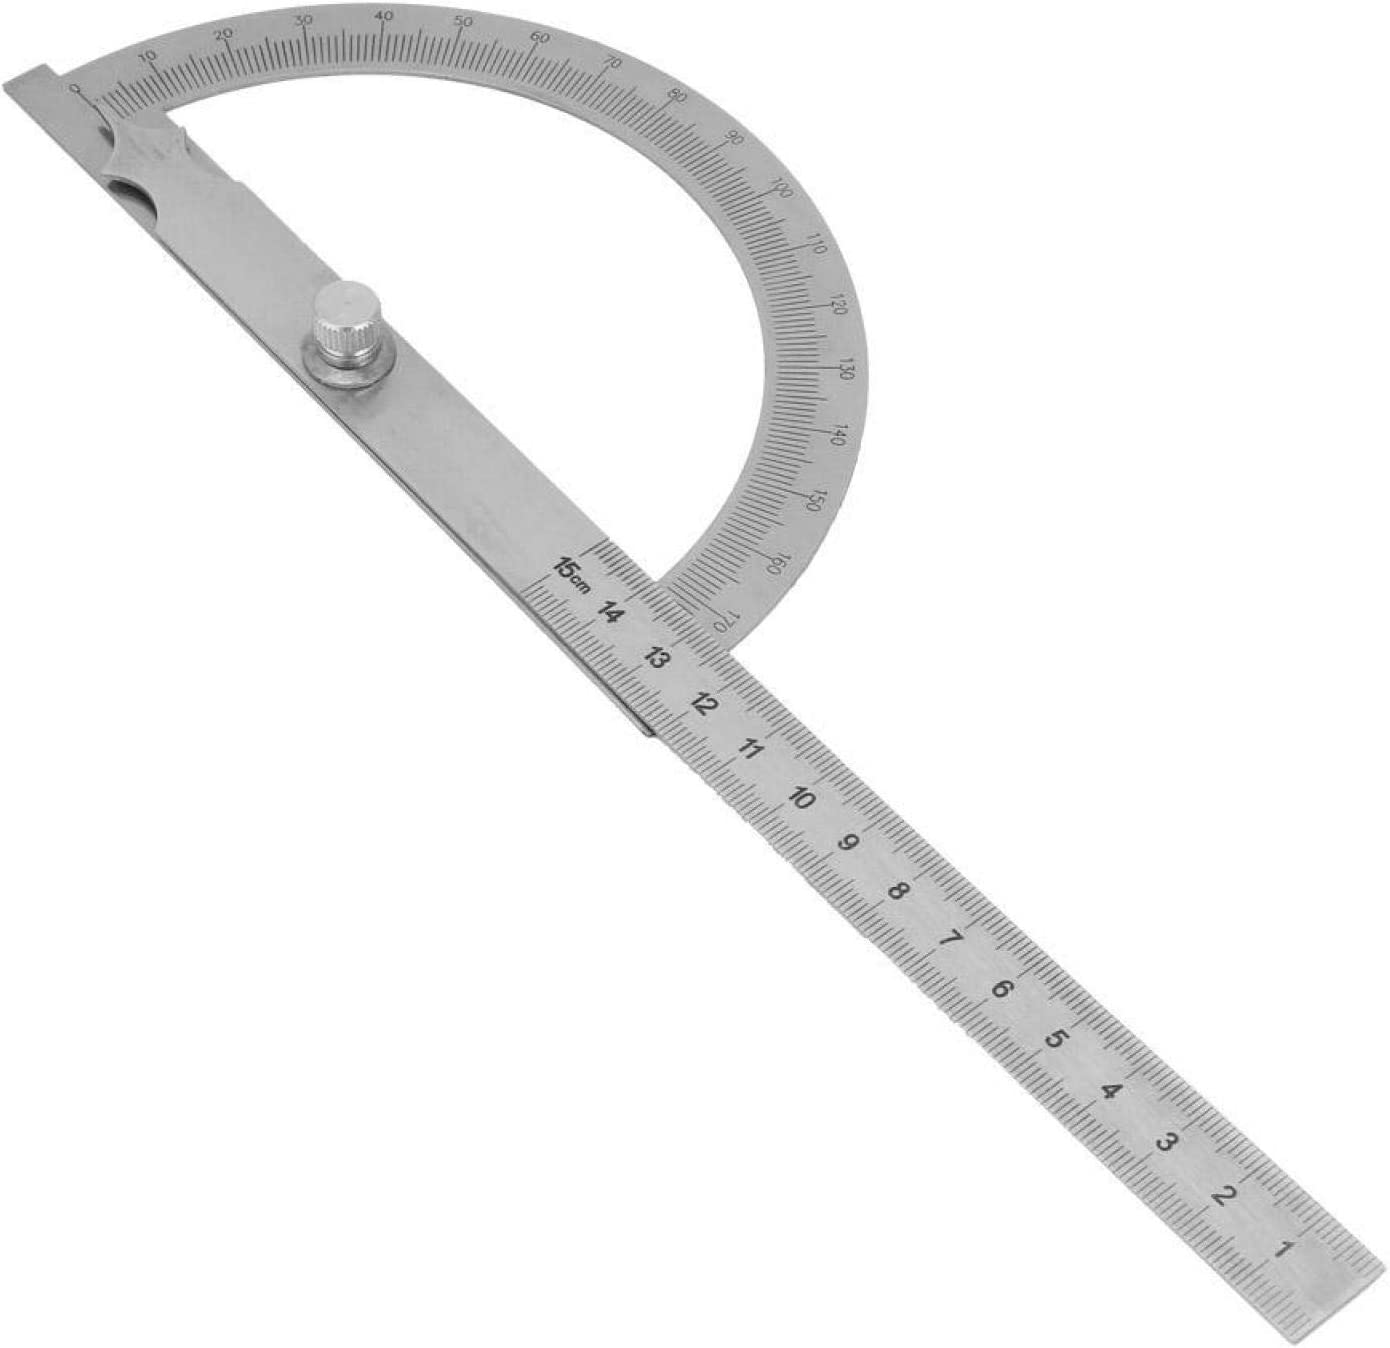 Degree Super popular specialty store Protractor Limited Special Price Sturdy Rotary Woodwork Rul 1Pcs for